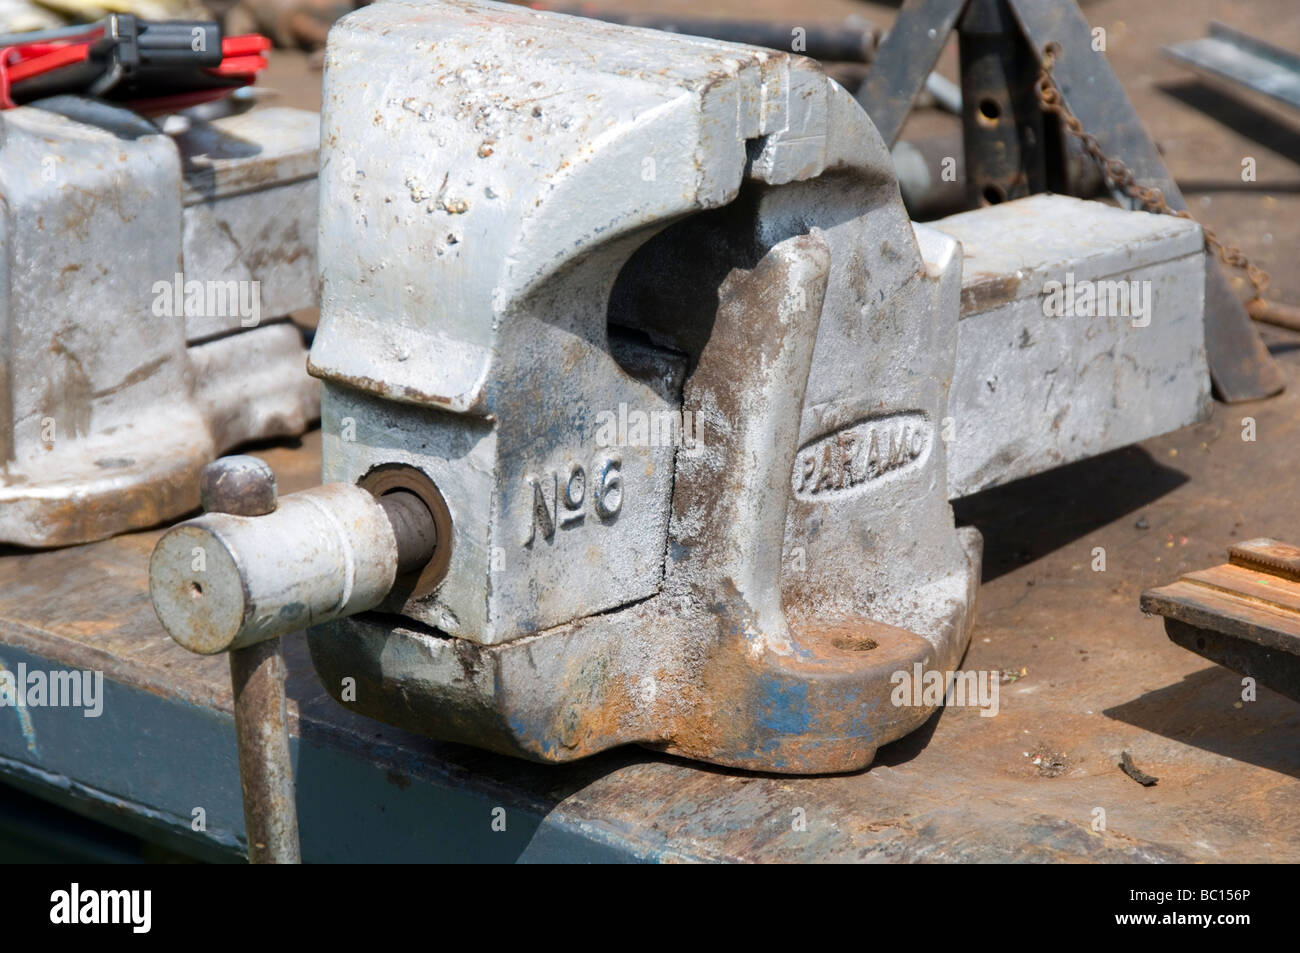 vice vices engineer engineering engineers bench work skill skills skilled manual labour clamp metal metalwork work Stock Photo